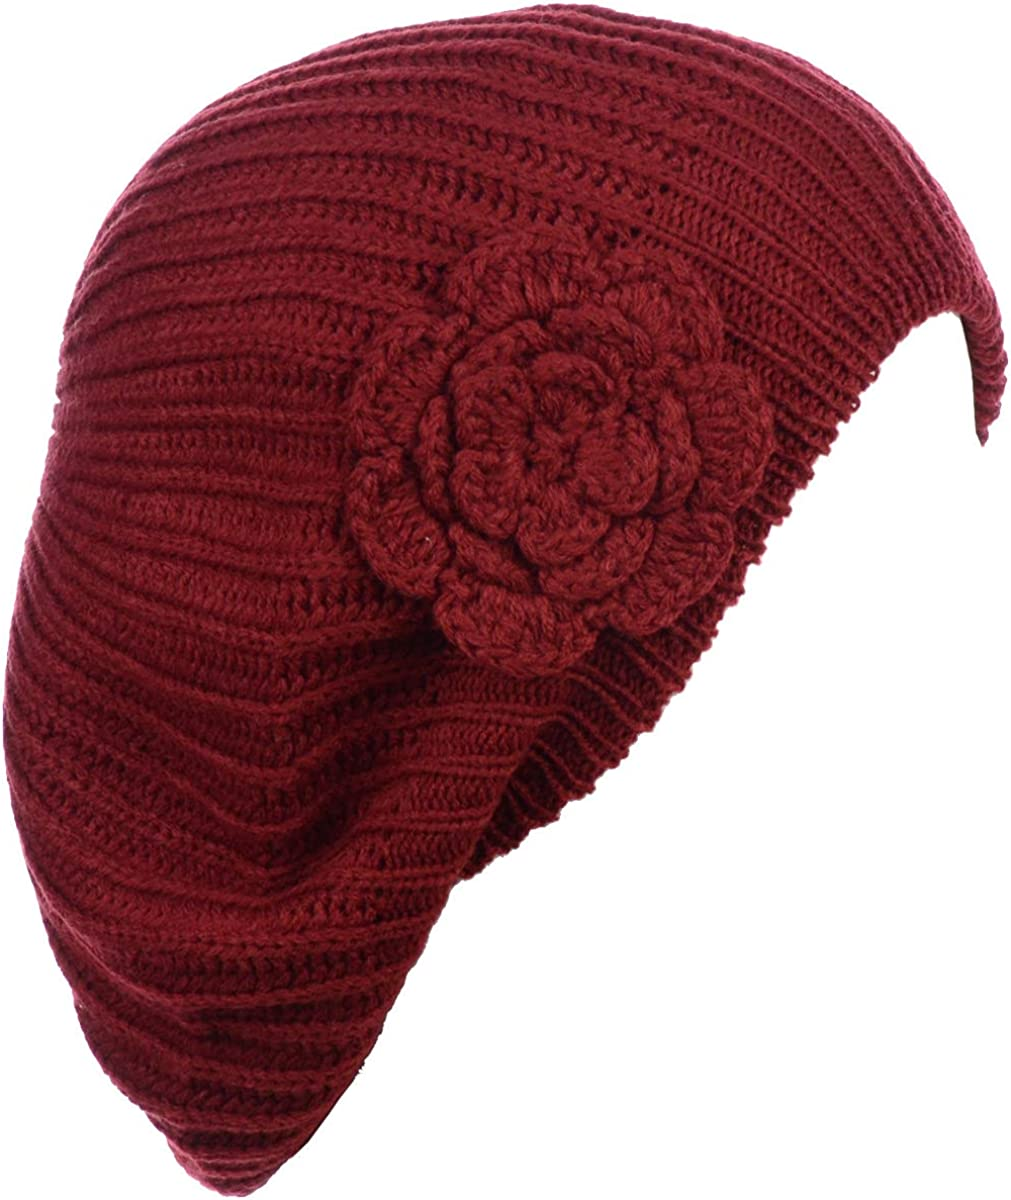 an - Womens Fall Winter Ribbed Knit Beret Double Layers with Flower